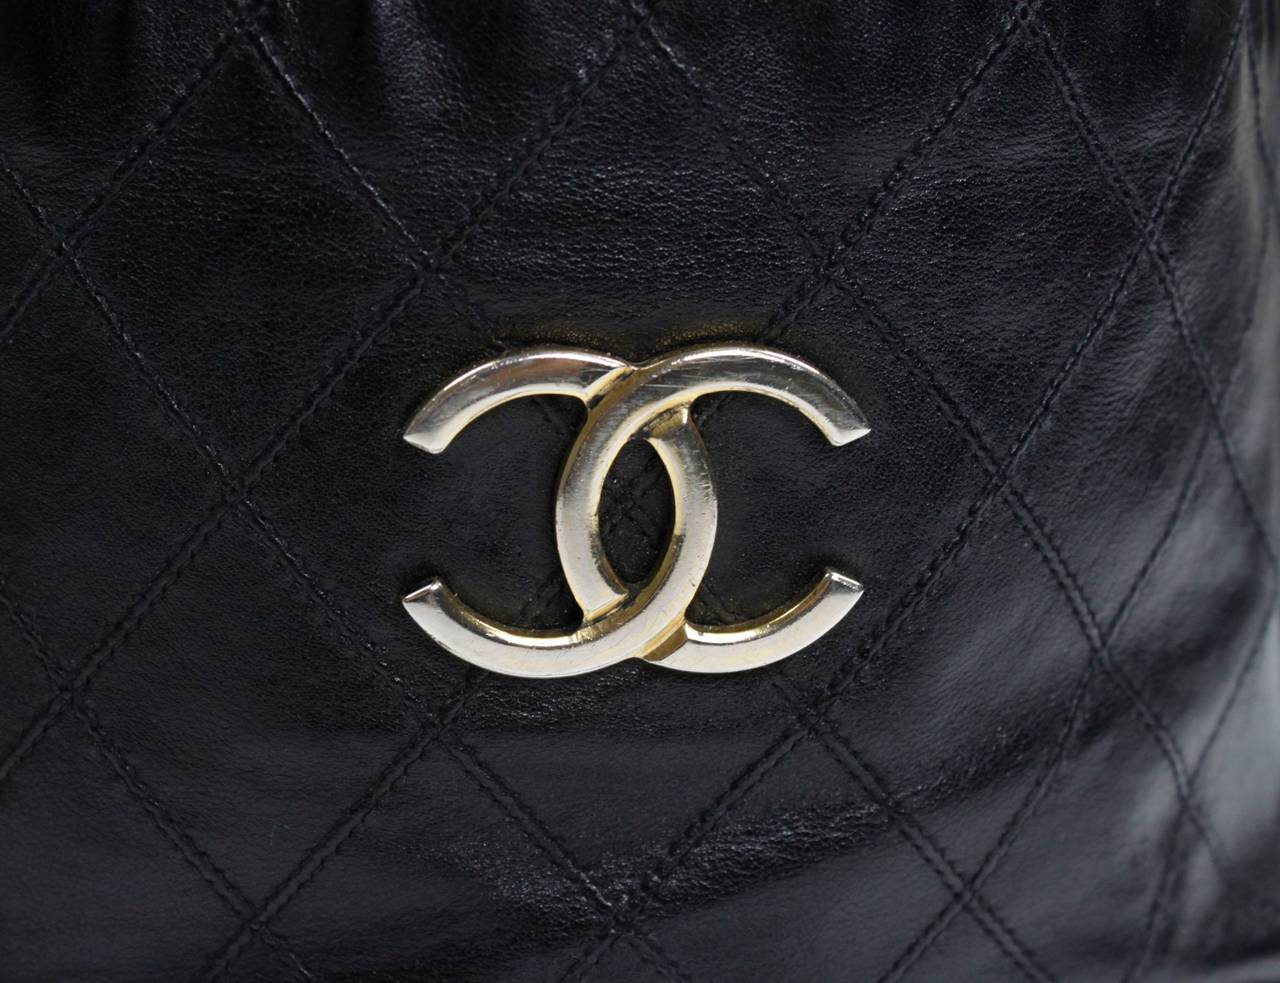 Chanel Black Quilted Bucket Bag with Logo and Chain Strap 7